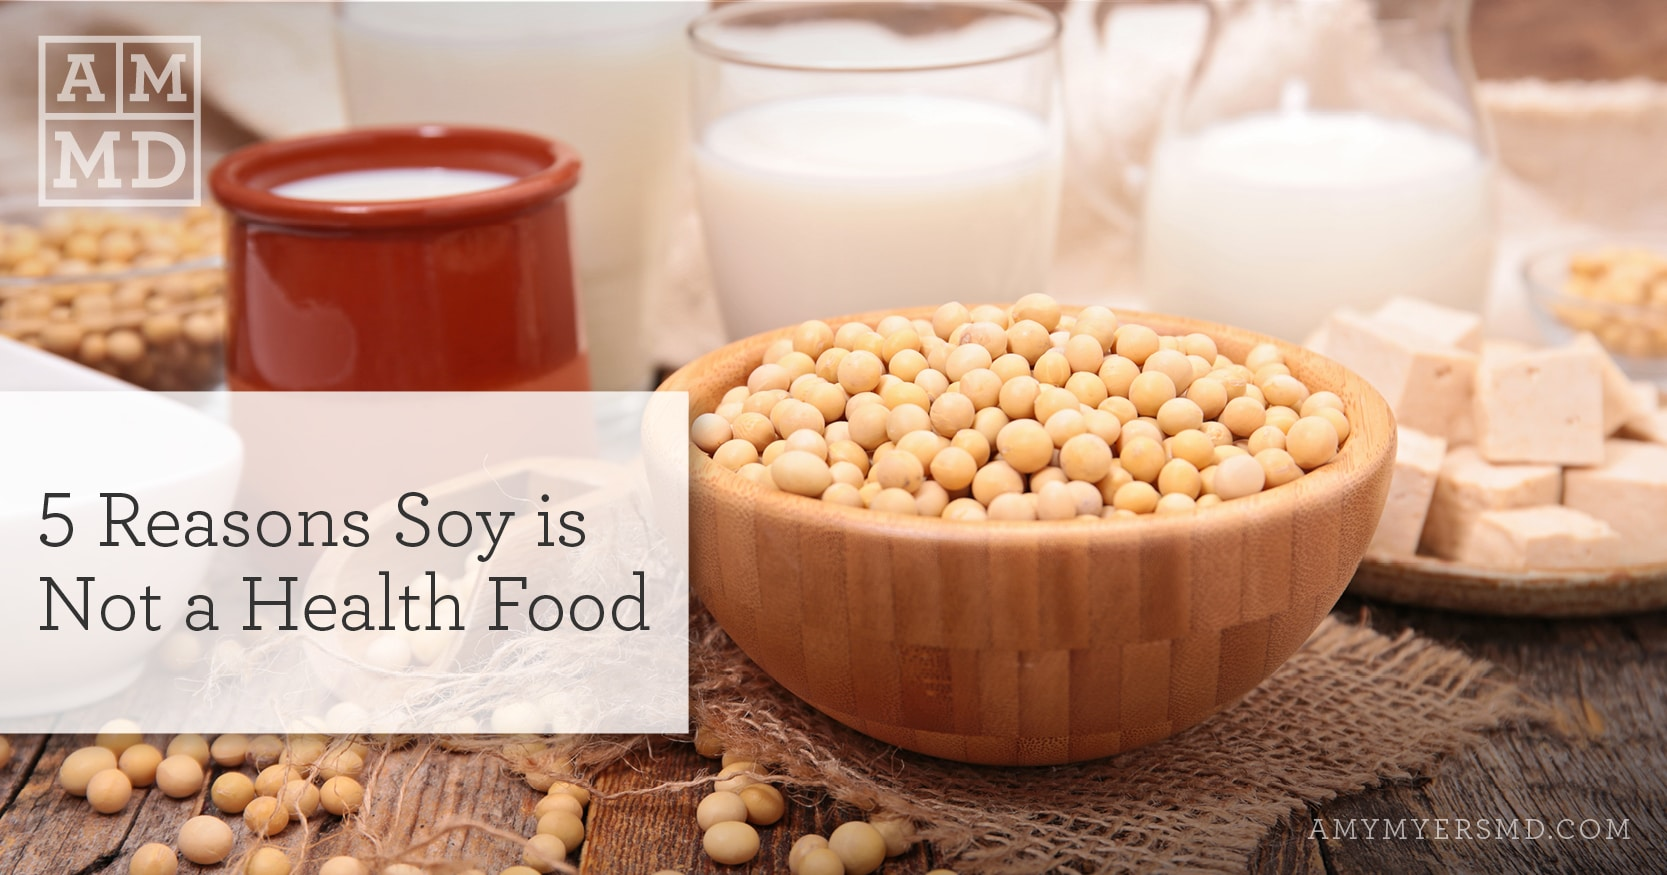 Reasons Soy is Not a Health Food - Bowl of Soybeans - Featured Image - Amy Myers MD